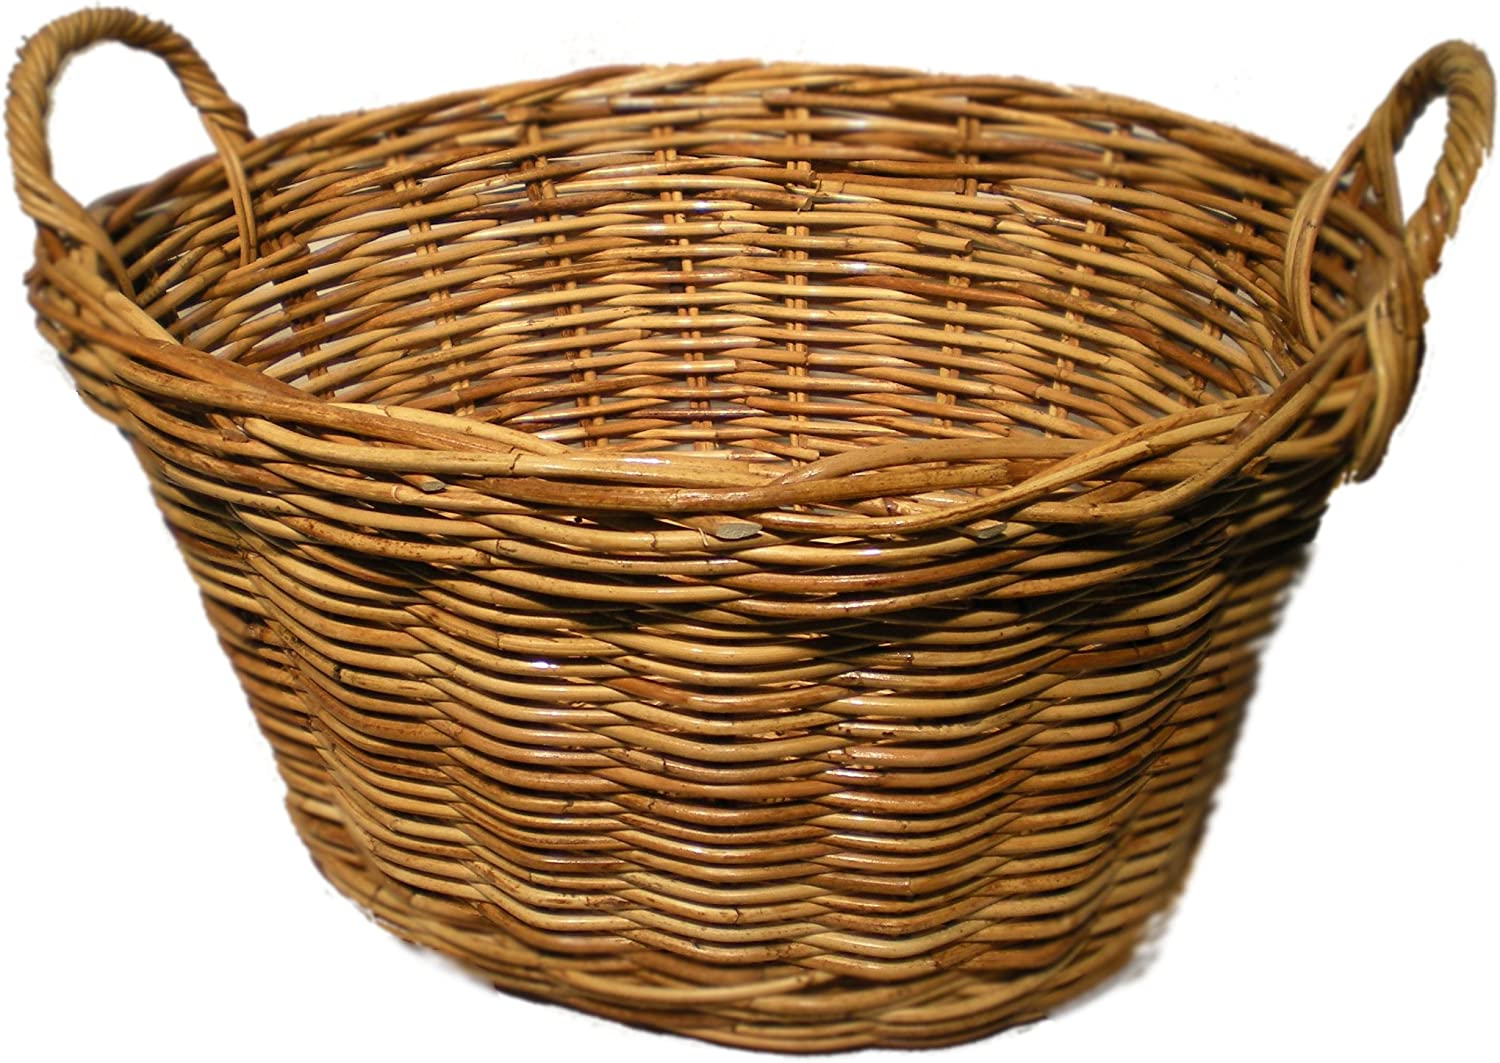 Somerset Levels Oval Wicker Washing Basket Amazon Co Uk Kitchen Home